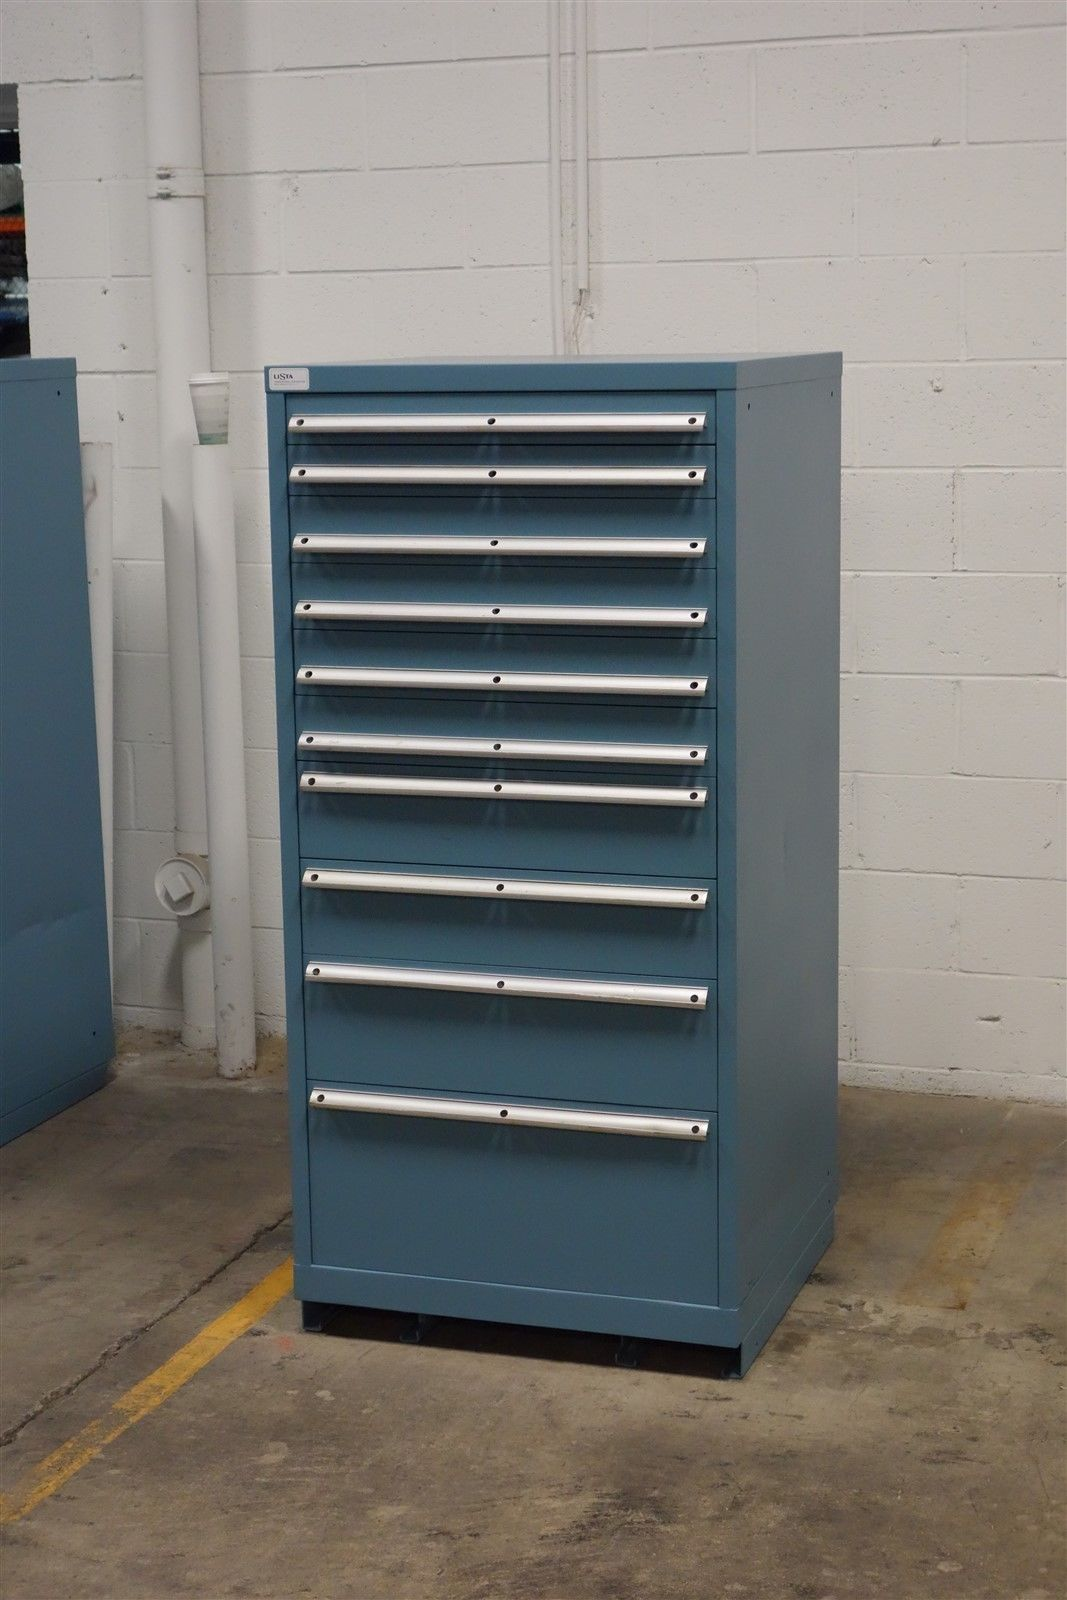 auction equipment stronghold catalogues fullers lot gb en type catalogue cabinets dividers with id lista duty drawer heavy cabinet tool